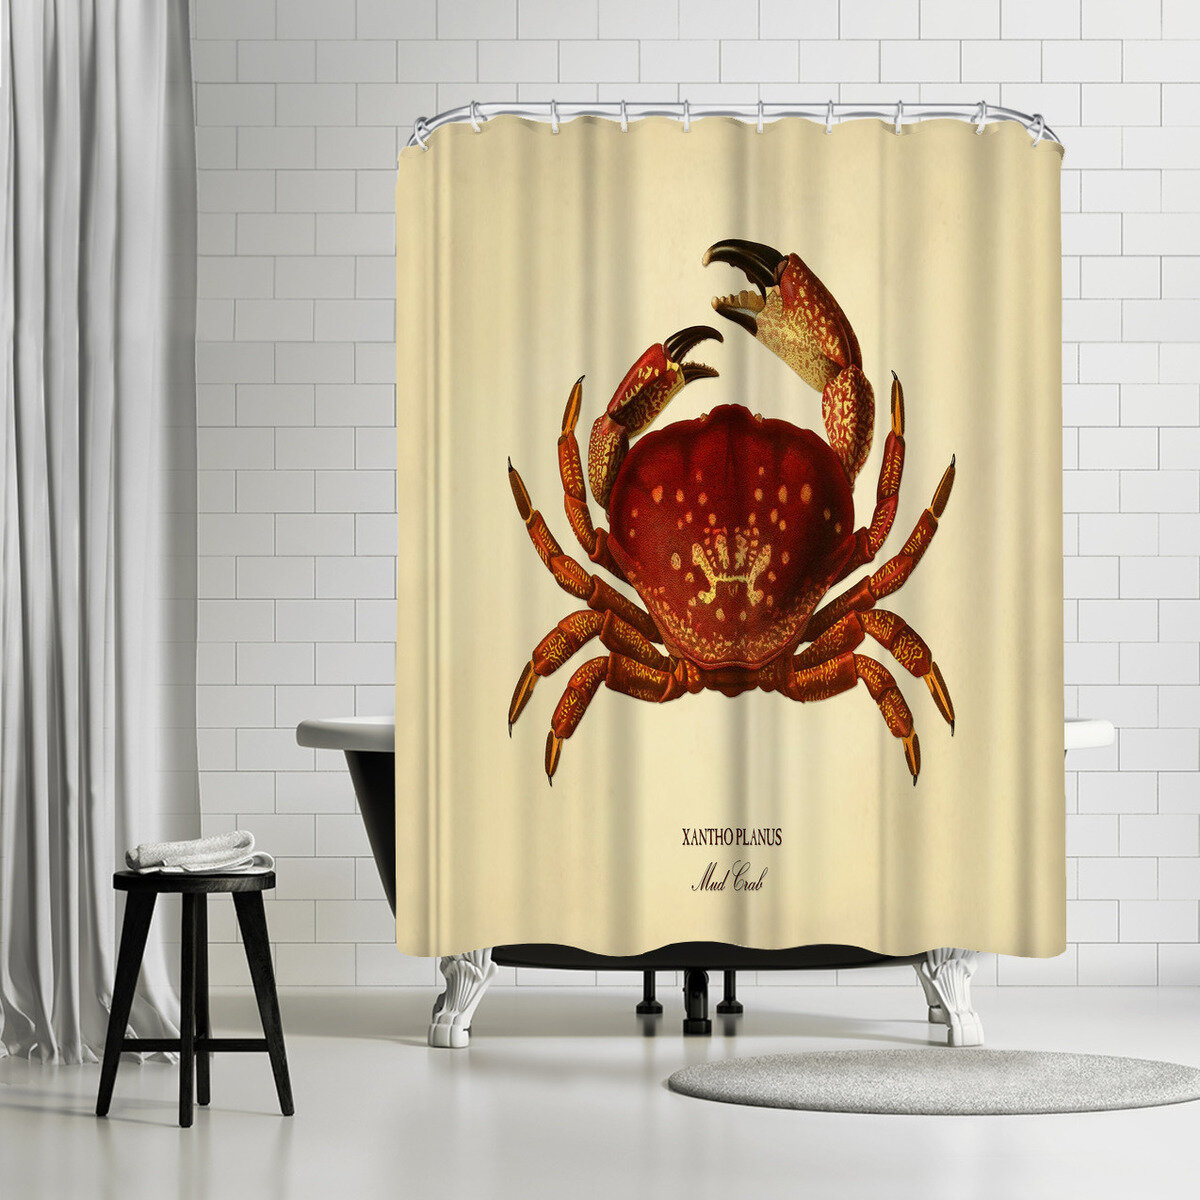 East Urban Home Adams Ale Mud Crab Shower Curtain